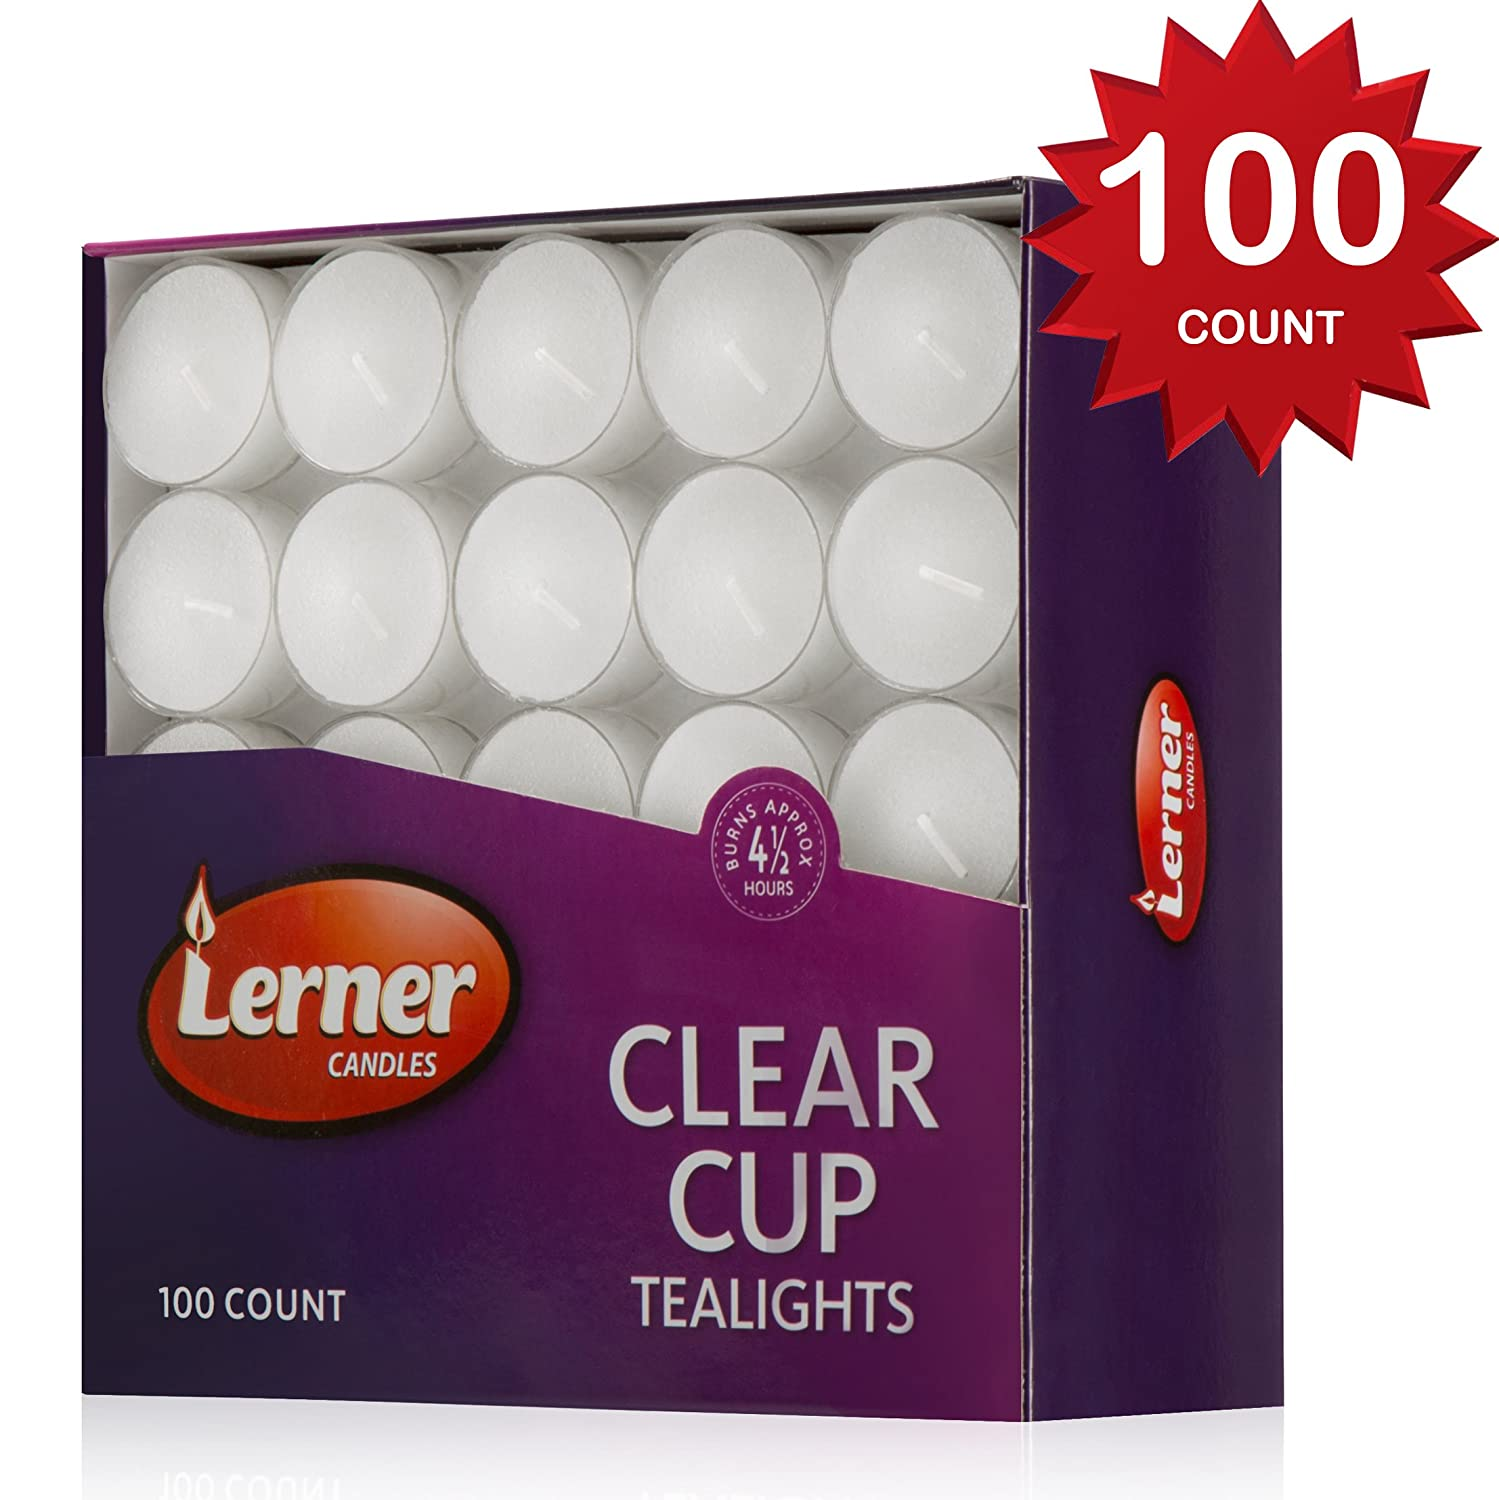 Lerner Pack of 100 Clear Cup White Unscented Tea Light Candles Aprox 4.5 Hour Burning Time Lerner Candles